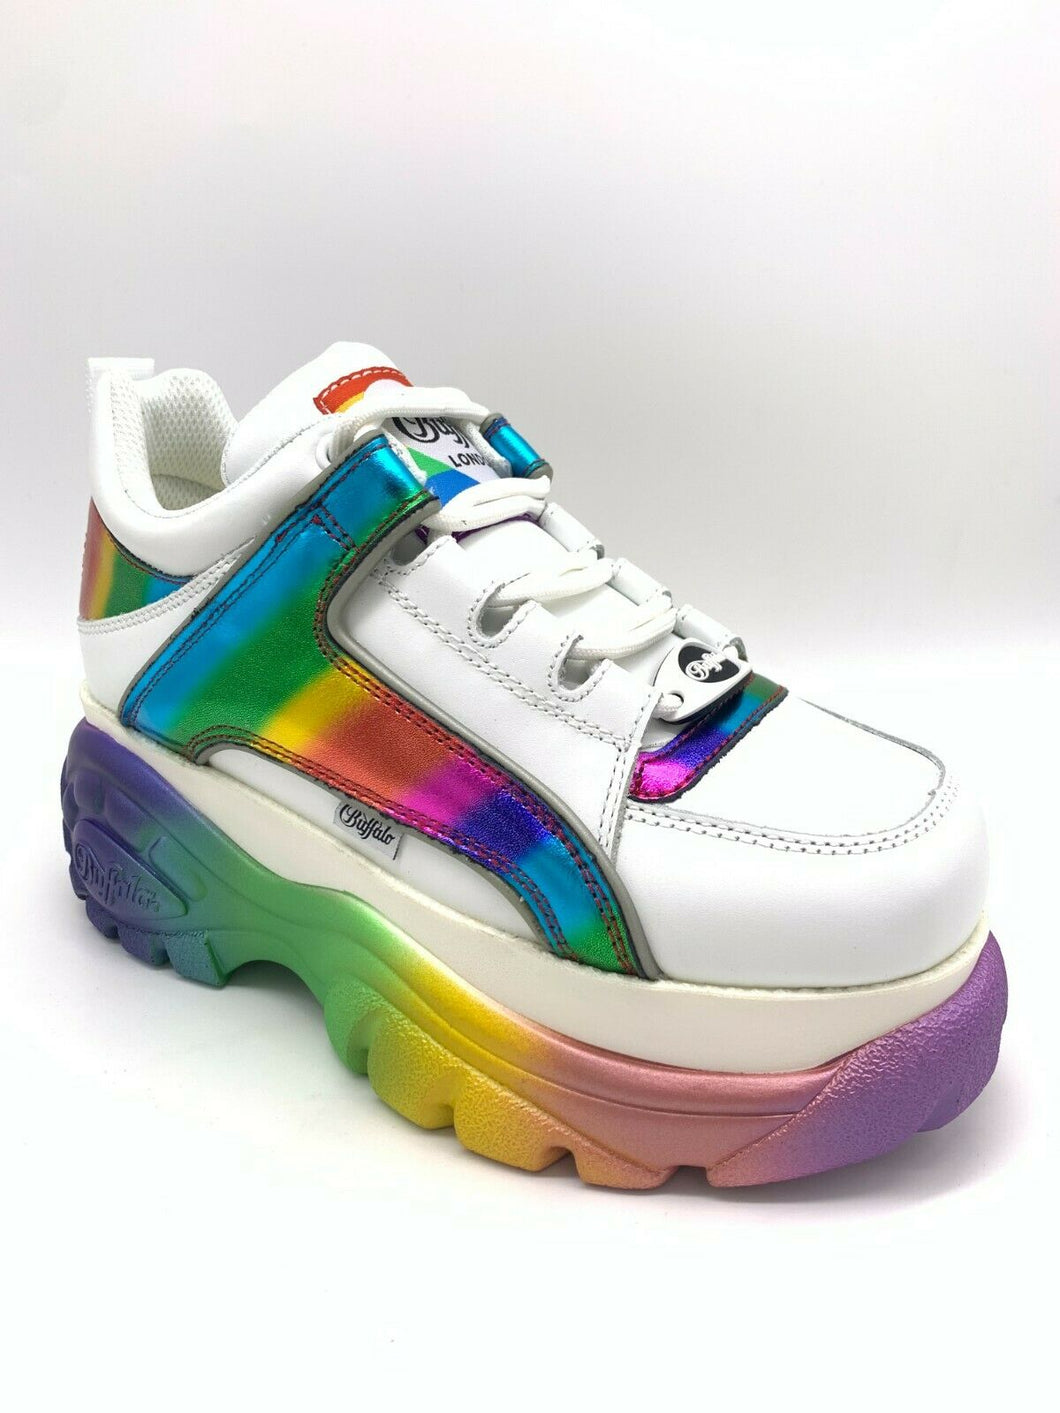 Buffalo London Classic Boots Shoes Plateau Schuhe 90er Pride Rainbow 1339-14